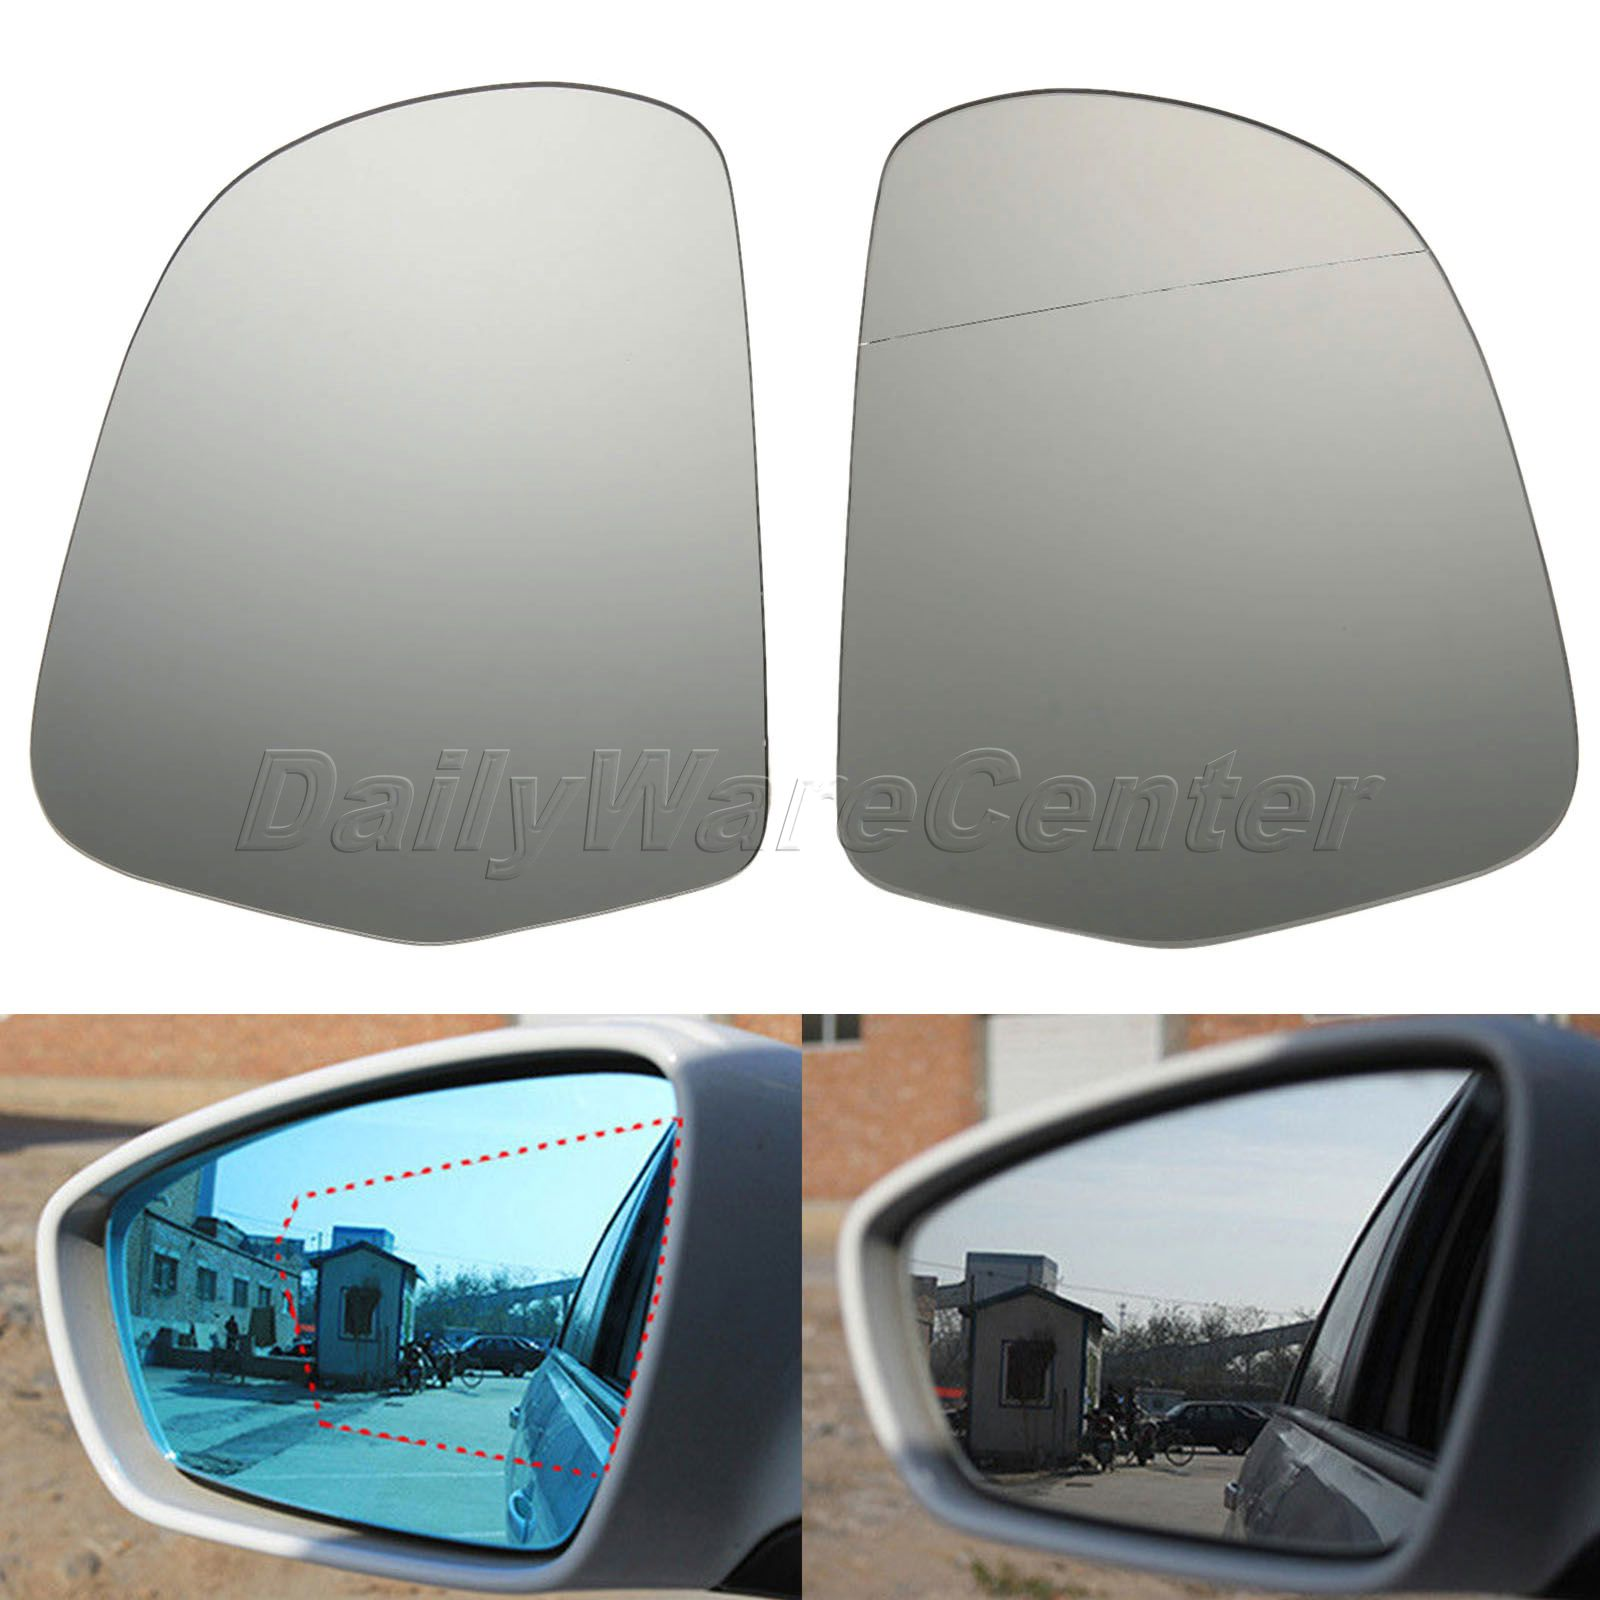 New Passenger Side Rearview Mirror Glass Heated for Audi A3 A4 A5 A6 Q3 Skoda